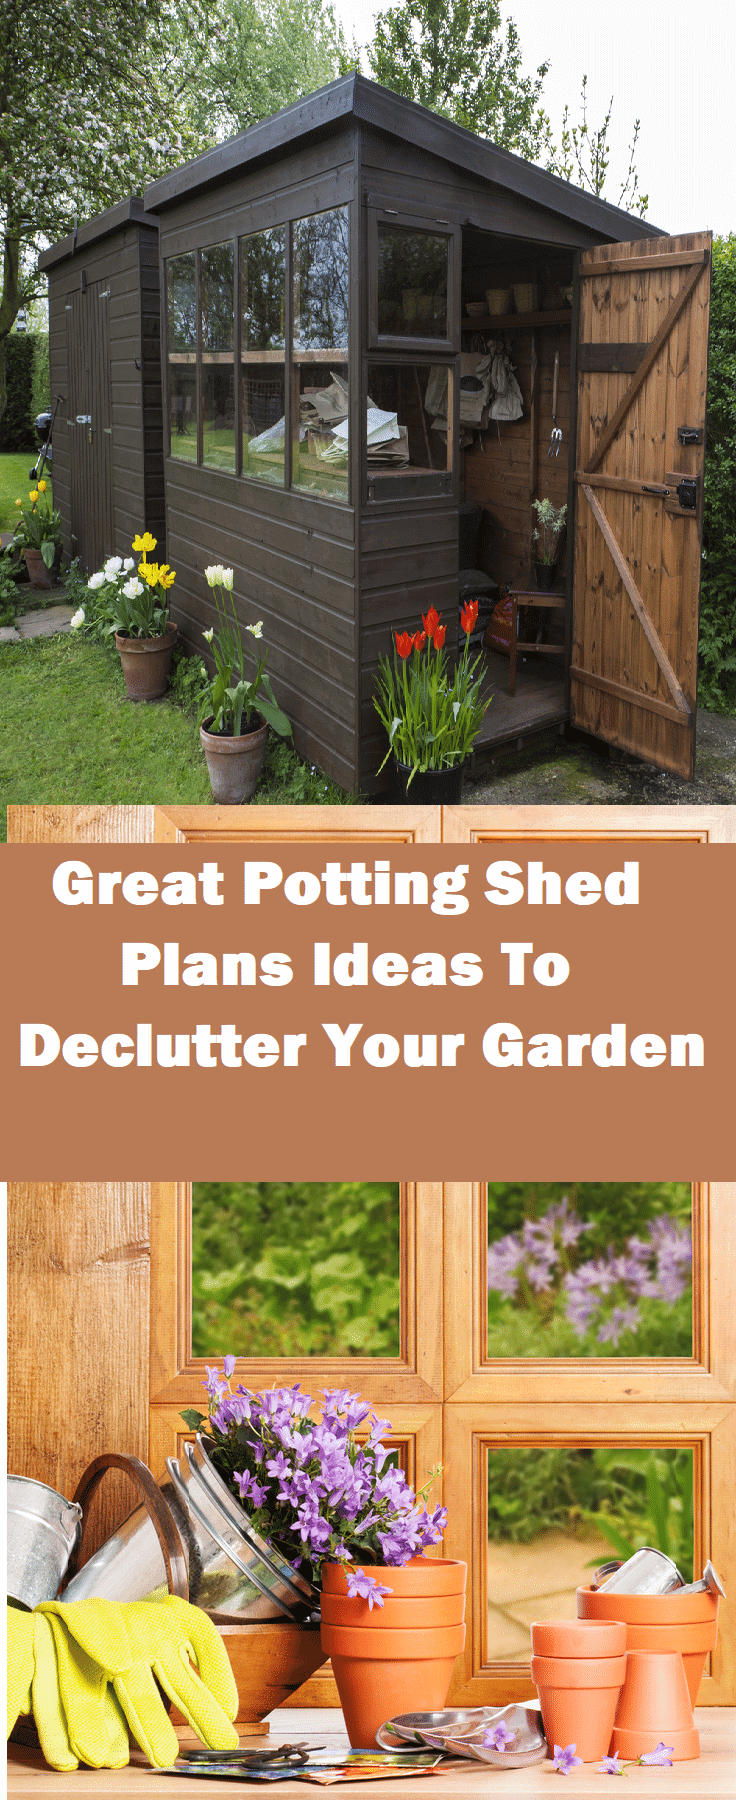 Great Potting Shed Plans Ideas To Declutter Your Garden Download